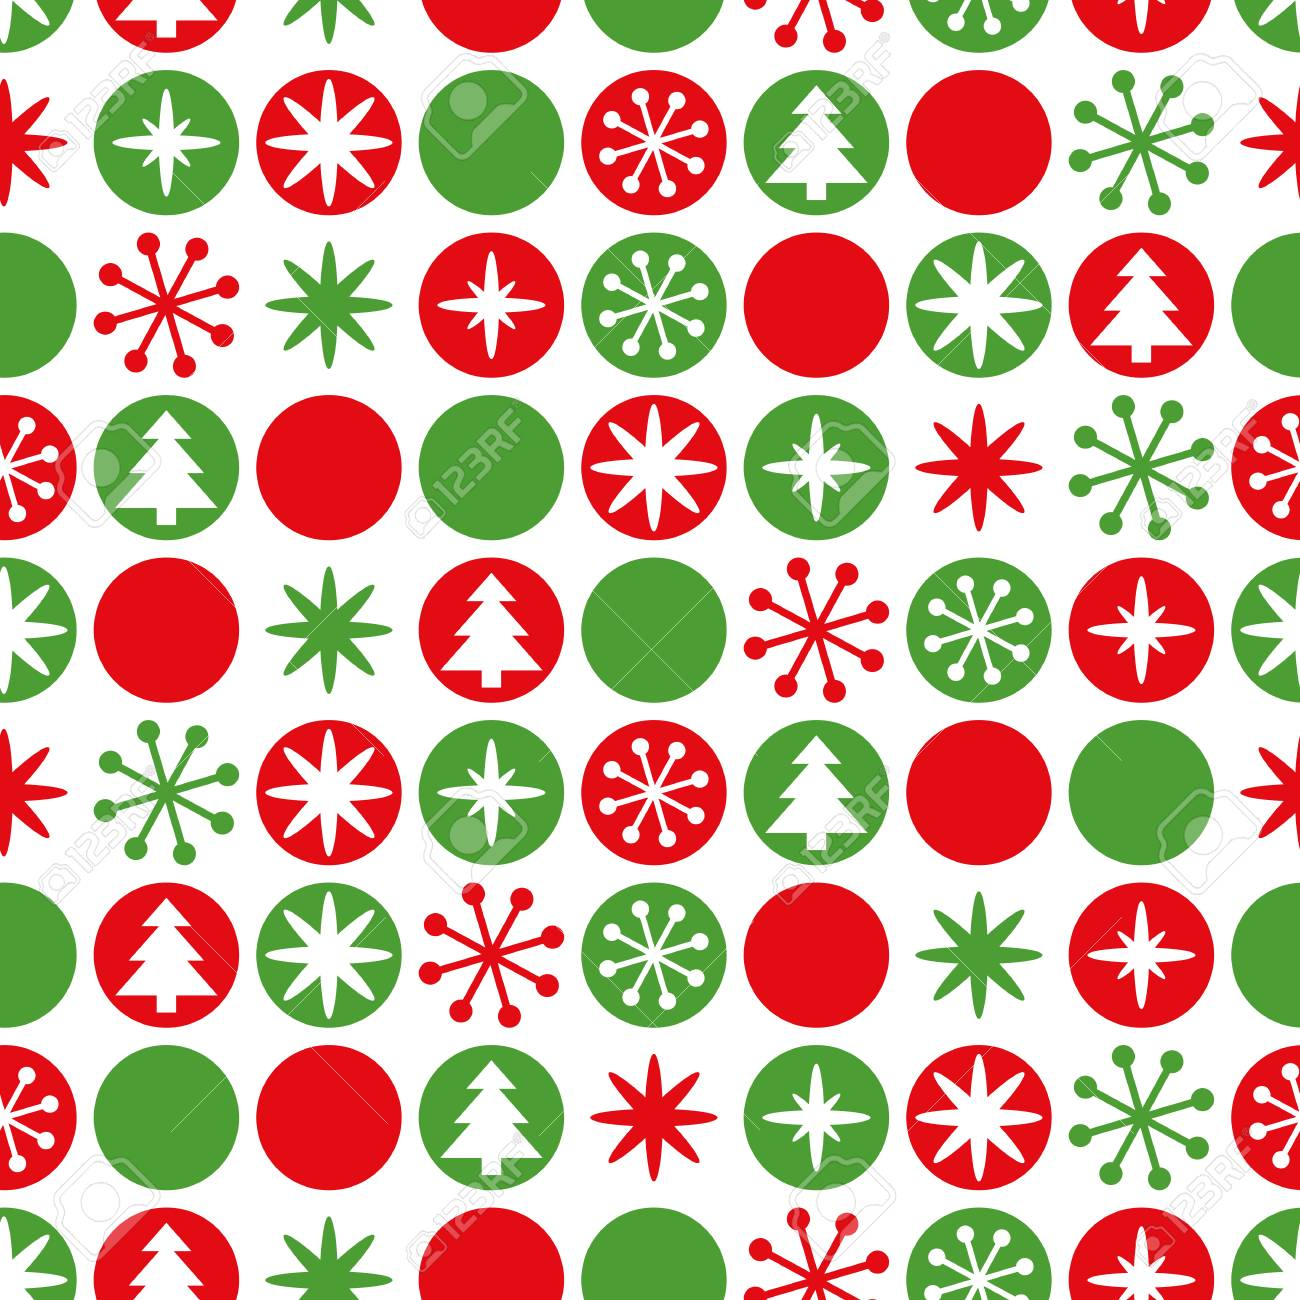 Christmas Green And Red.Simple Geometric Seamless Christmas Pattern Traditional Green